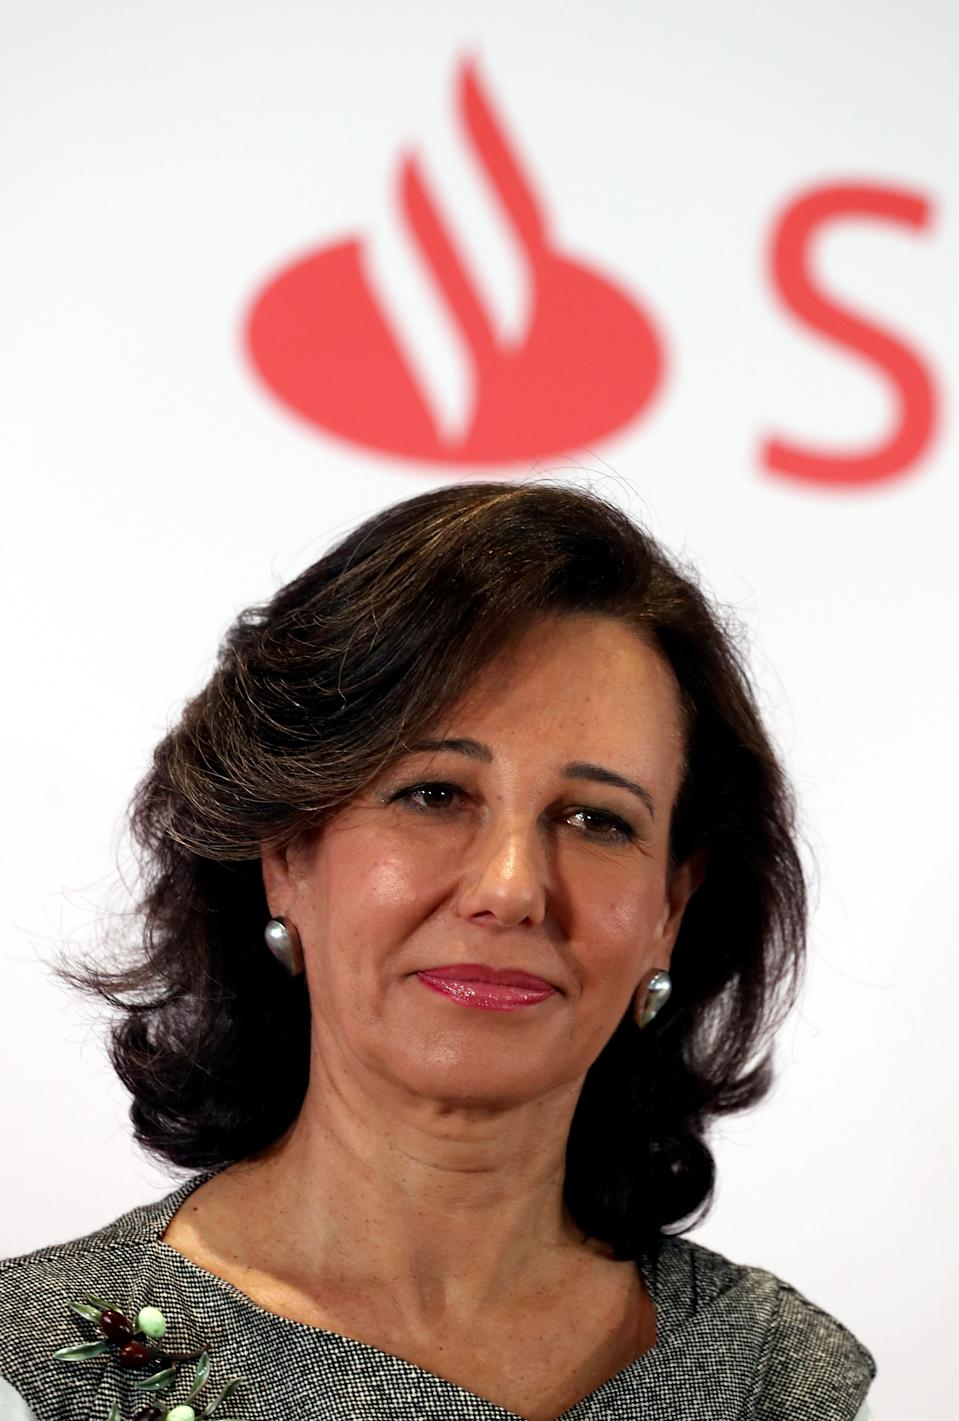 Spanish banker, who 0n 10 September 2014, was appointed executive chairman of Santander Group, the fourth generation of the Botín family to hold this role. Prior to this she was CEO of Santander UK, a role she held from December 2010.